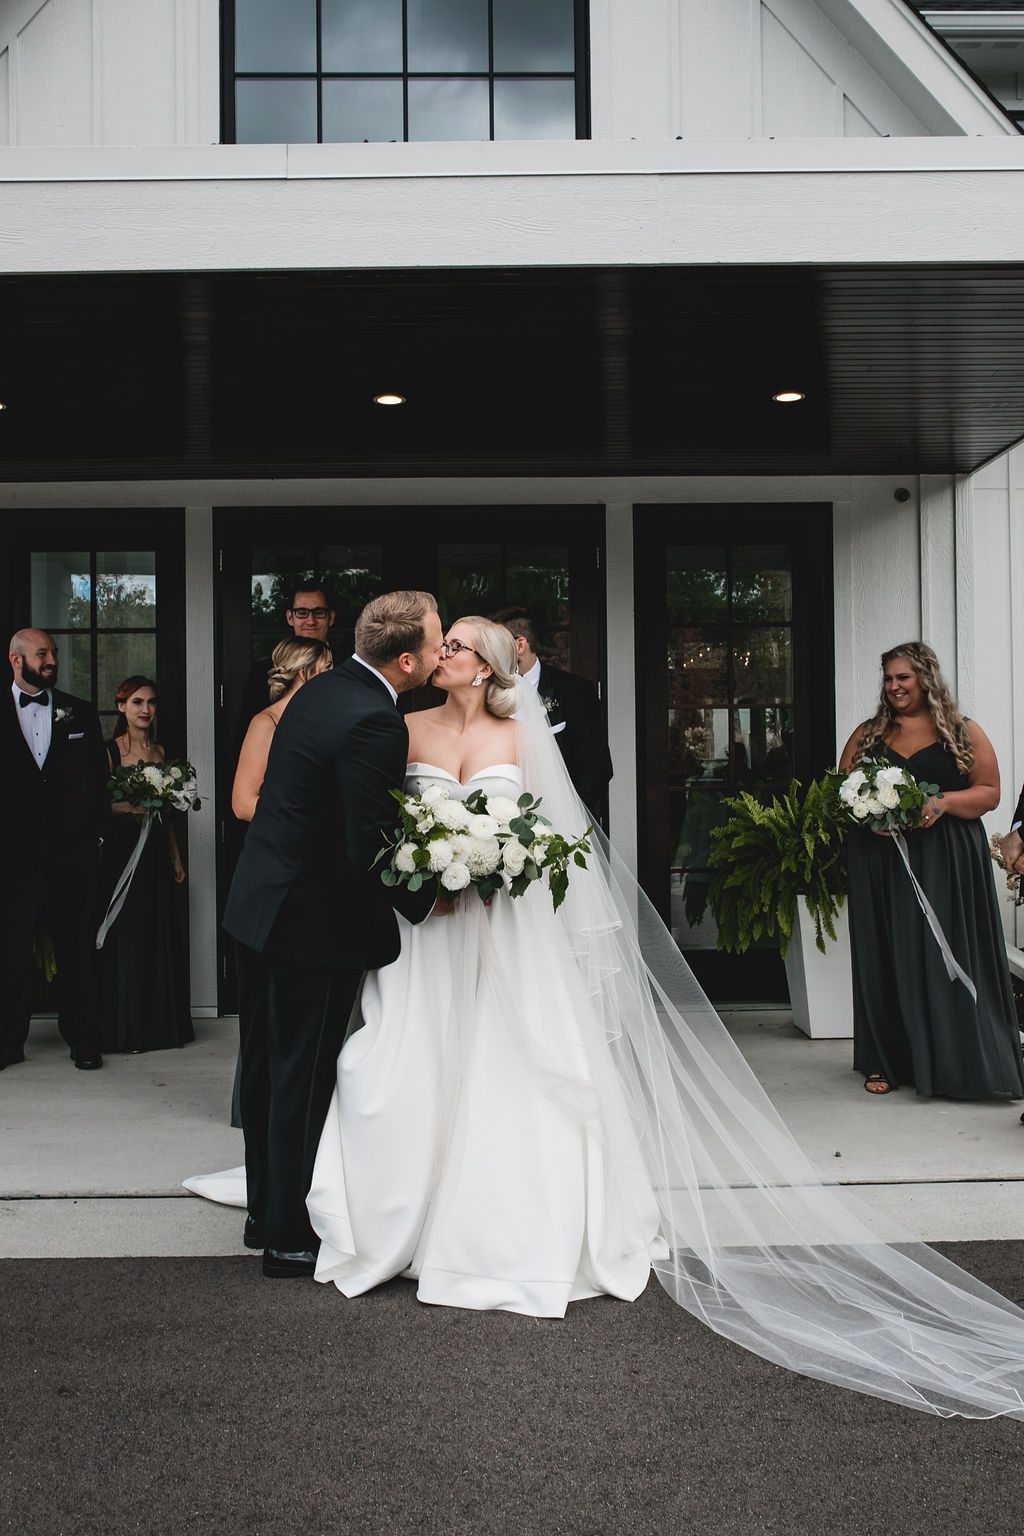 Kelly and Matt | Hutton House front entry | Aqua Fox Photography | Sixpence Events and Planning Minnesota Wedding Planner63.jpg